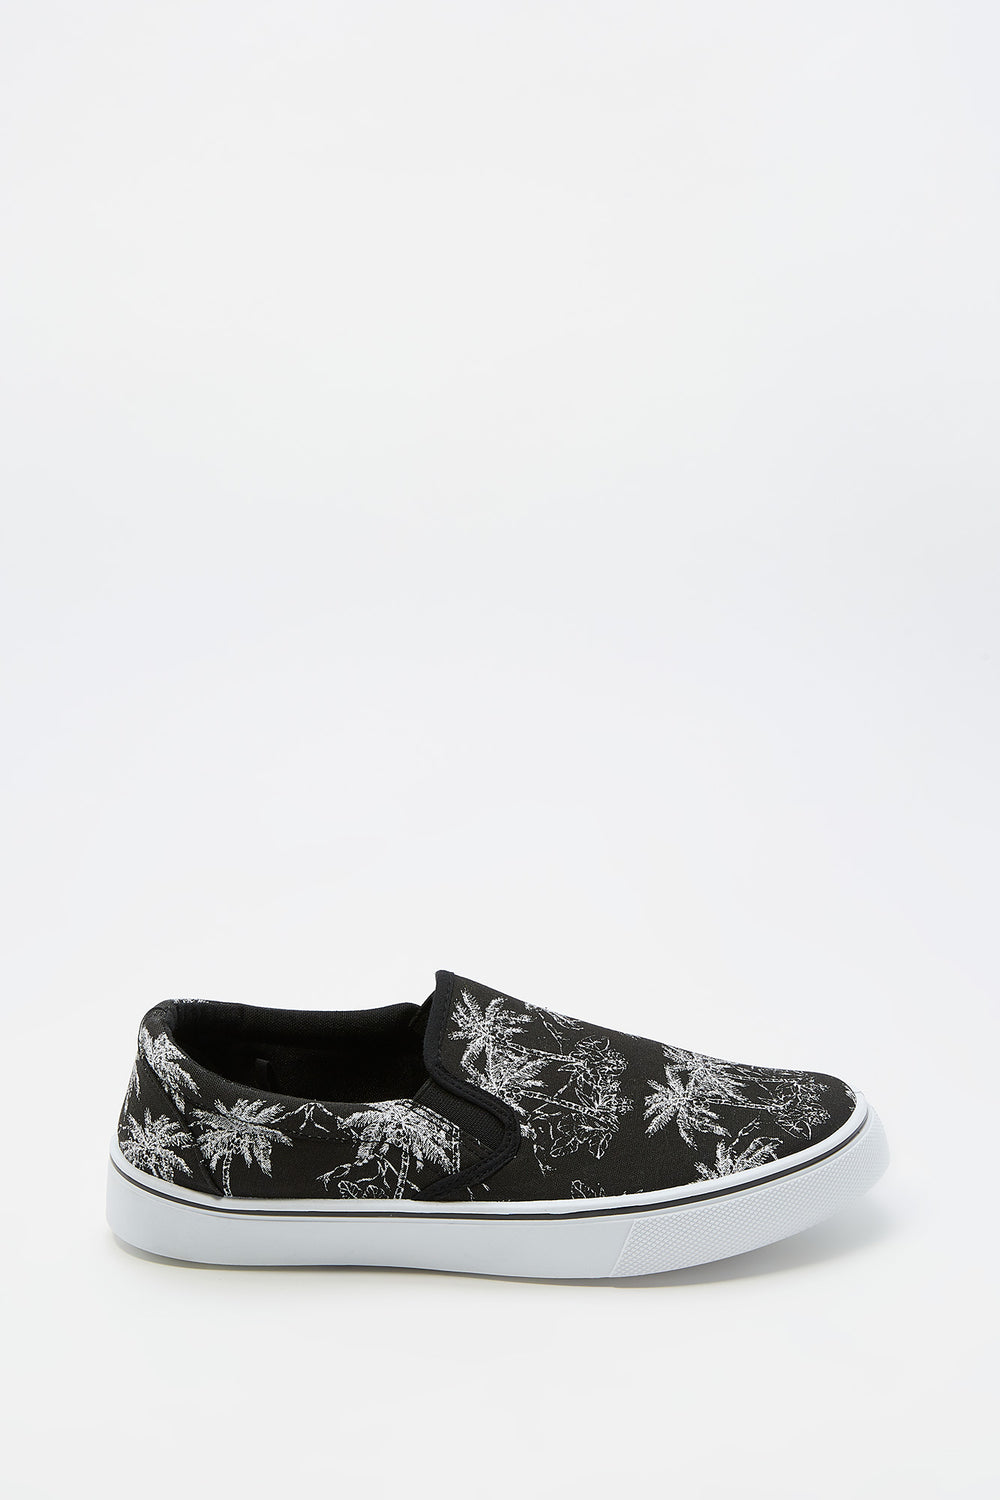 Printed Canvas Slip-On Shoe Assorted